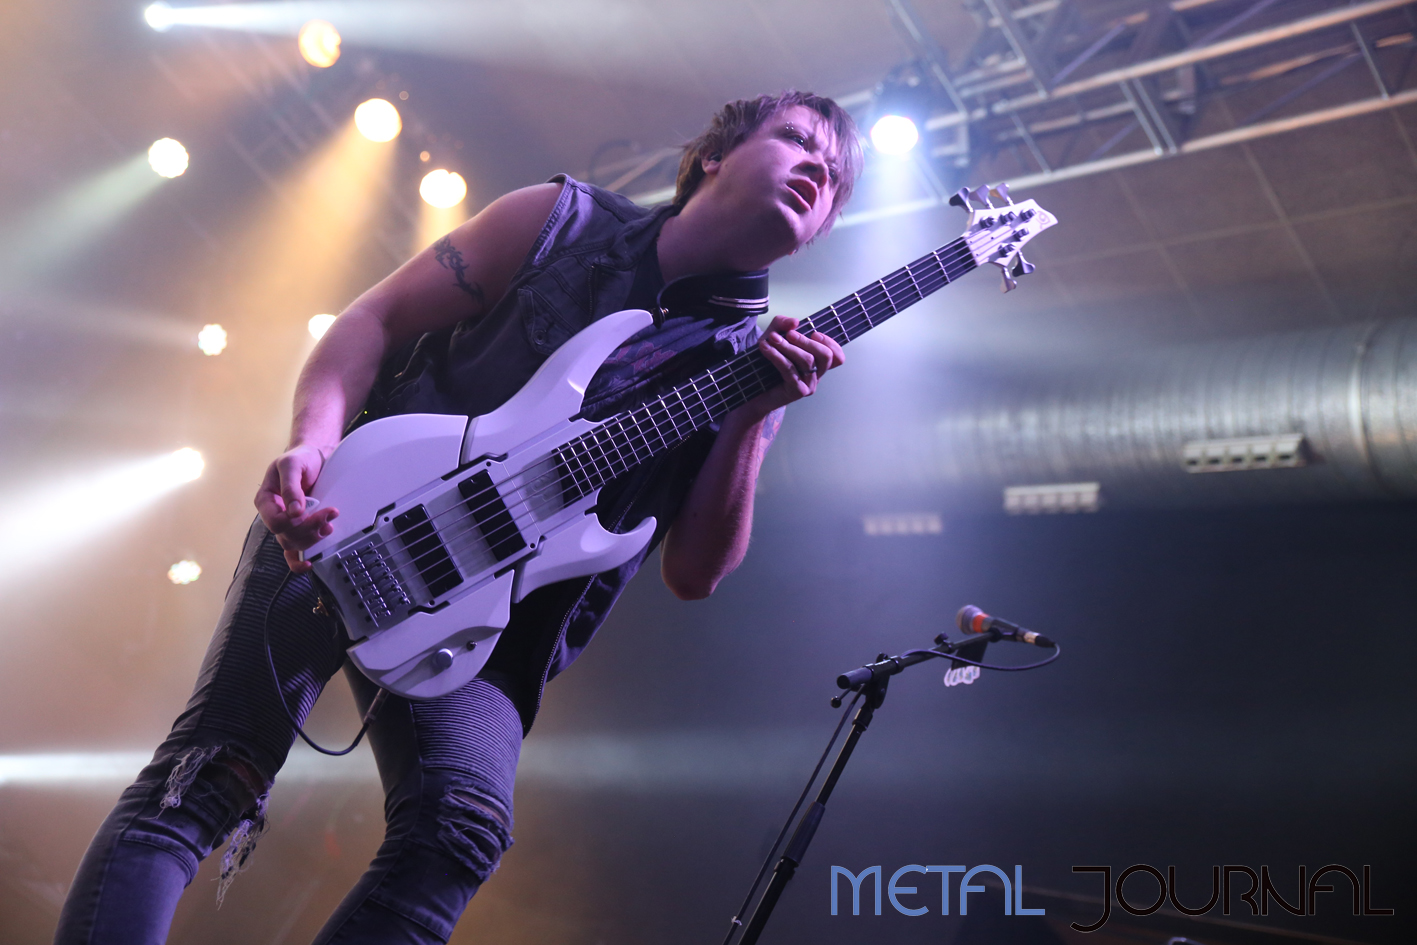 heat bilbao metal journal 2018 pic 5